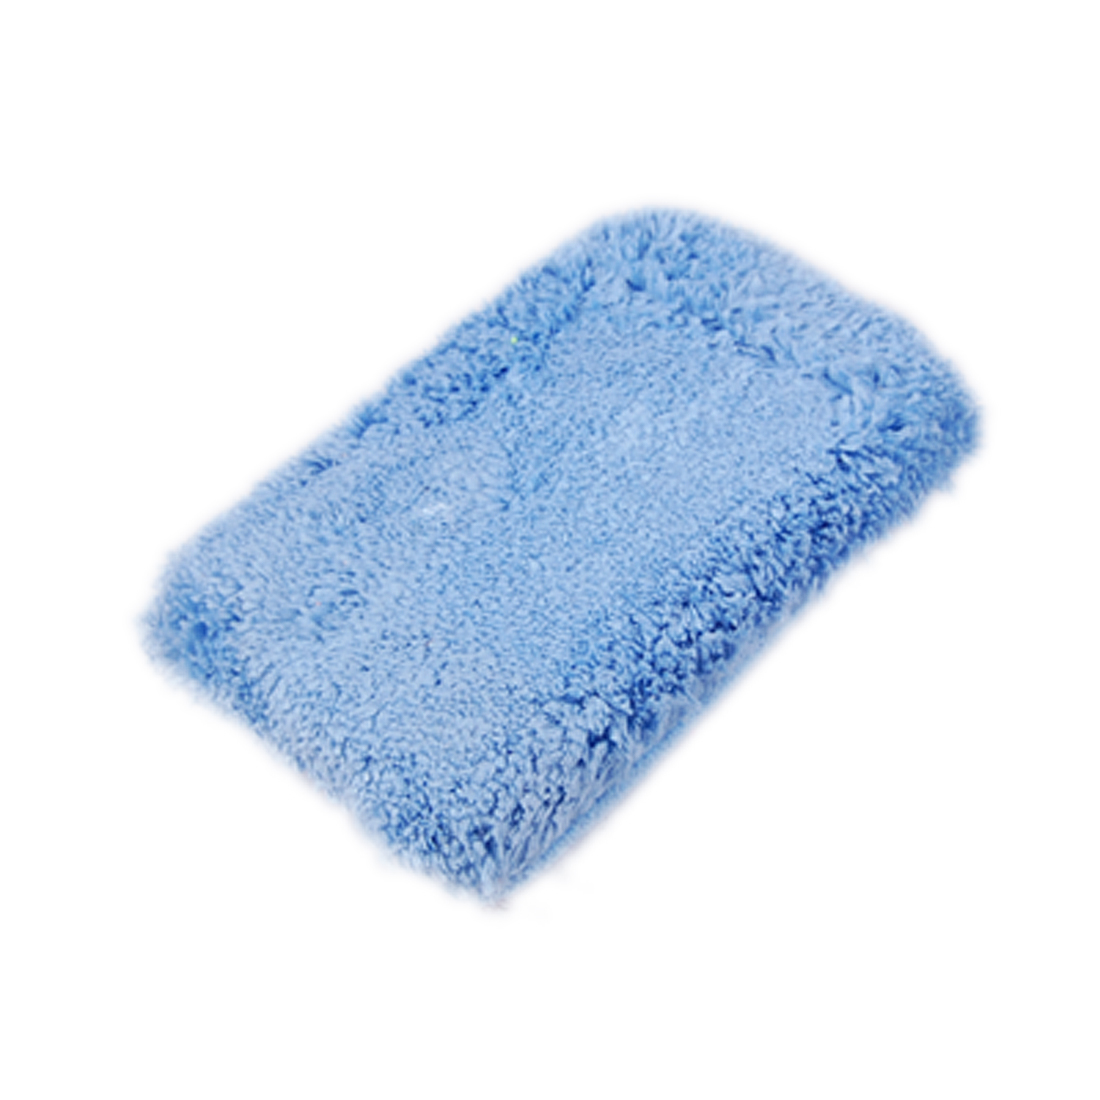 Microfiber Car Washing Duster Sponge Dry Cleaning Pad Blue New